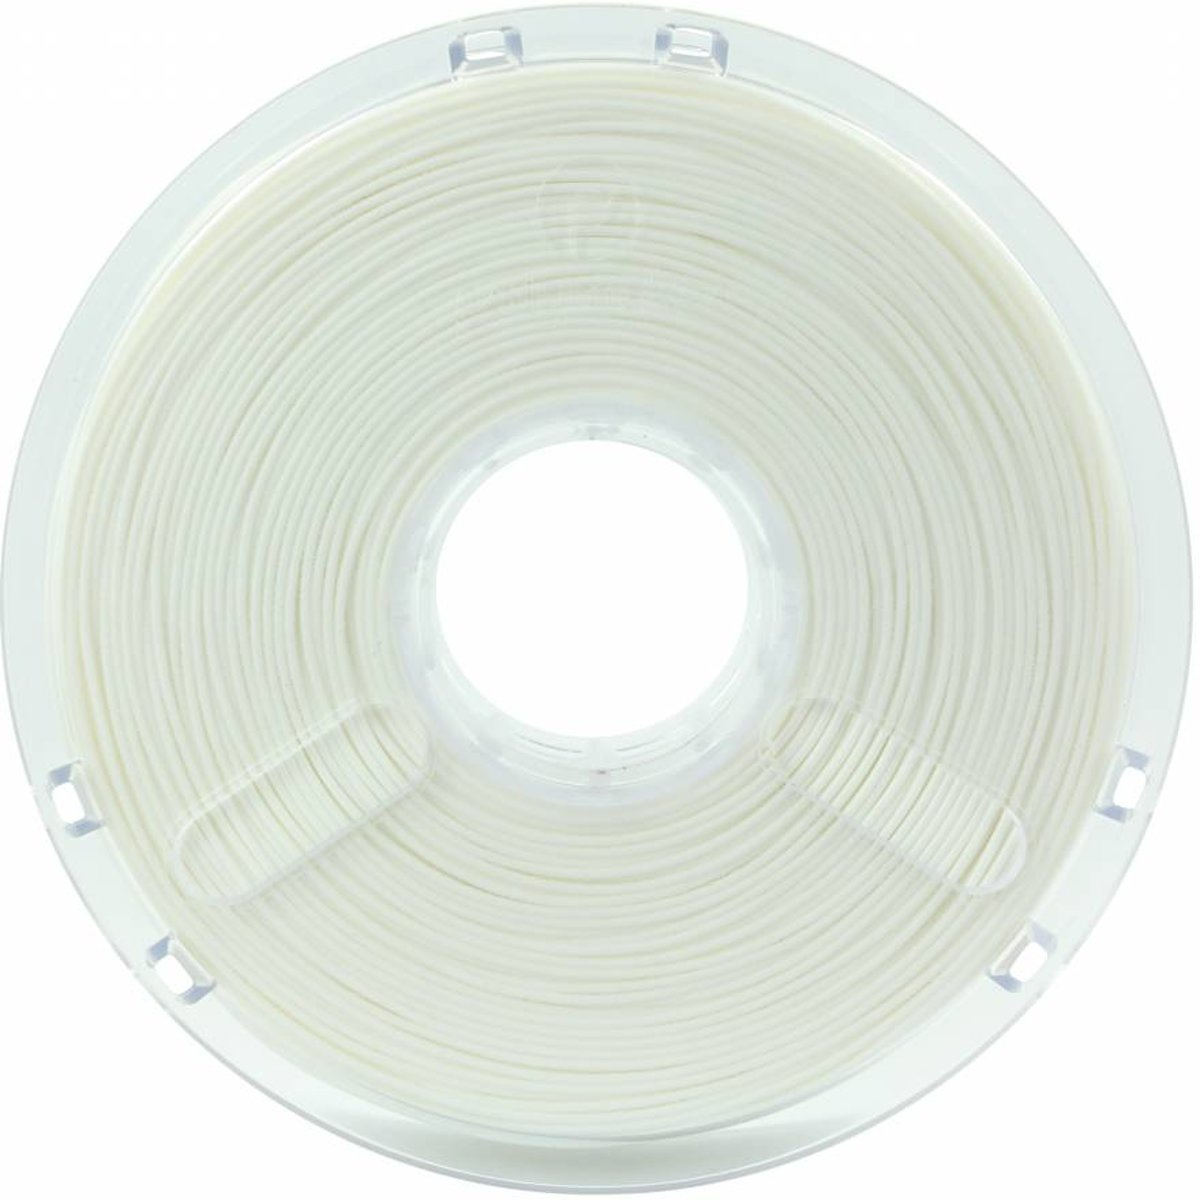 Polymaker Filament voor 3D-printer PolyMax 1.75 mm 0.75 g Jam Free Technology - True White